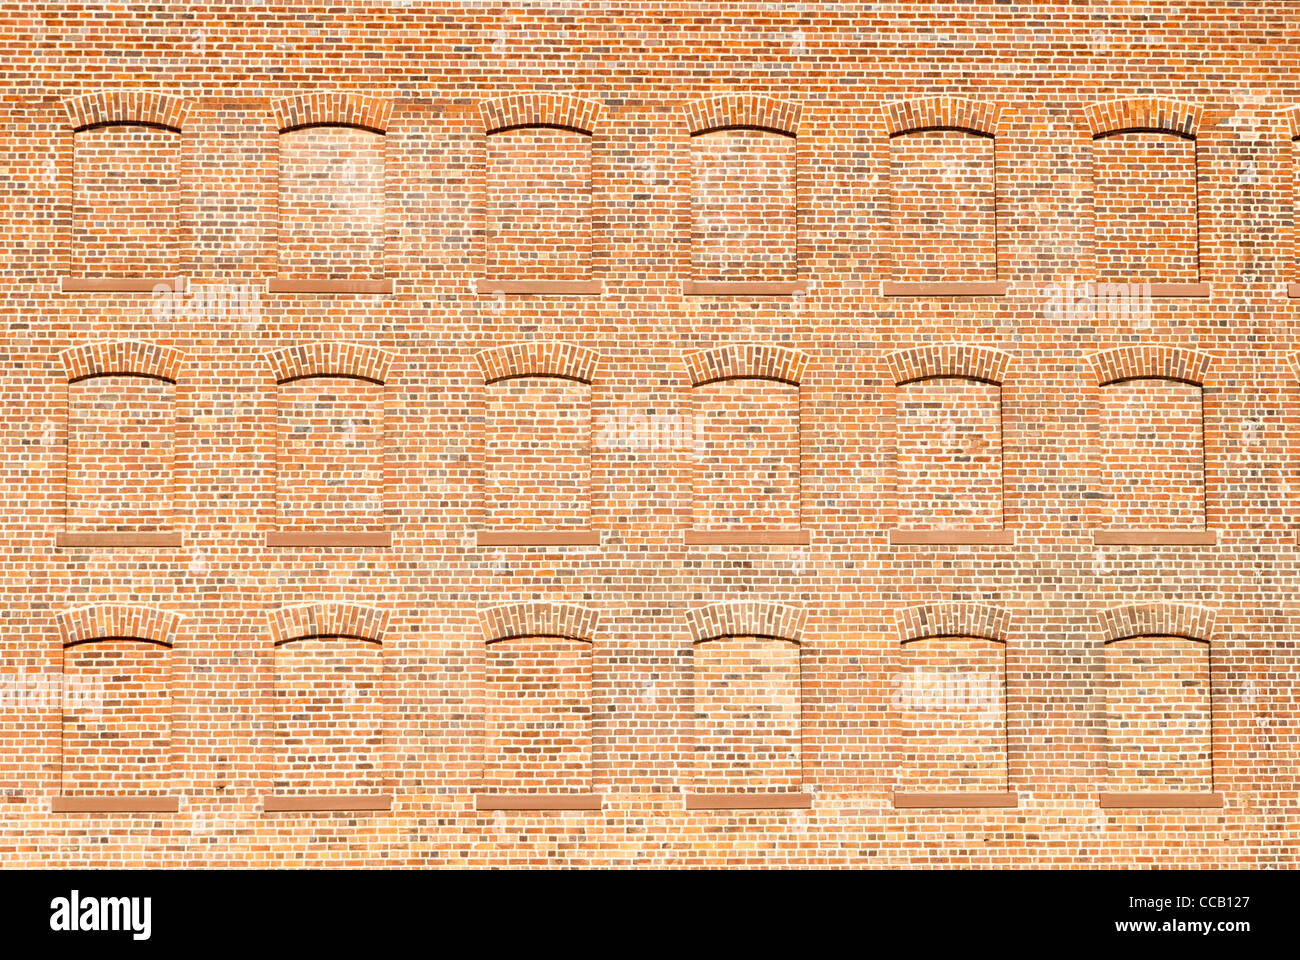 Decorative Traditional Red Brick Wall With Bricked Up Windows